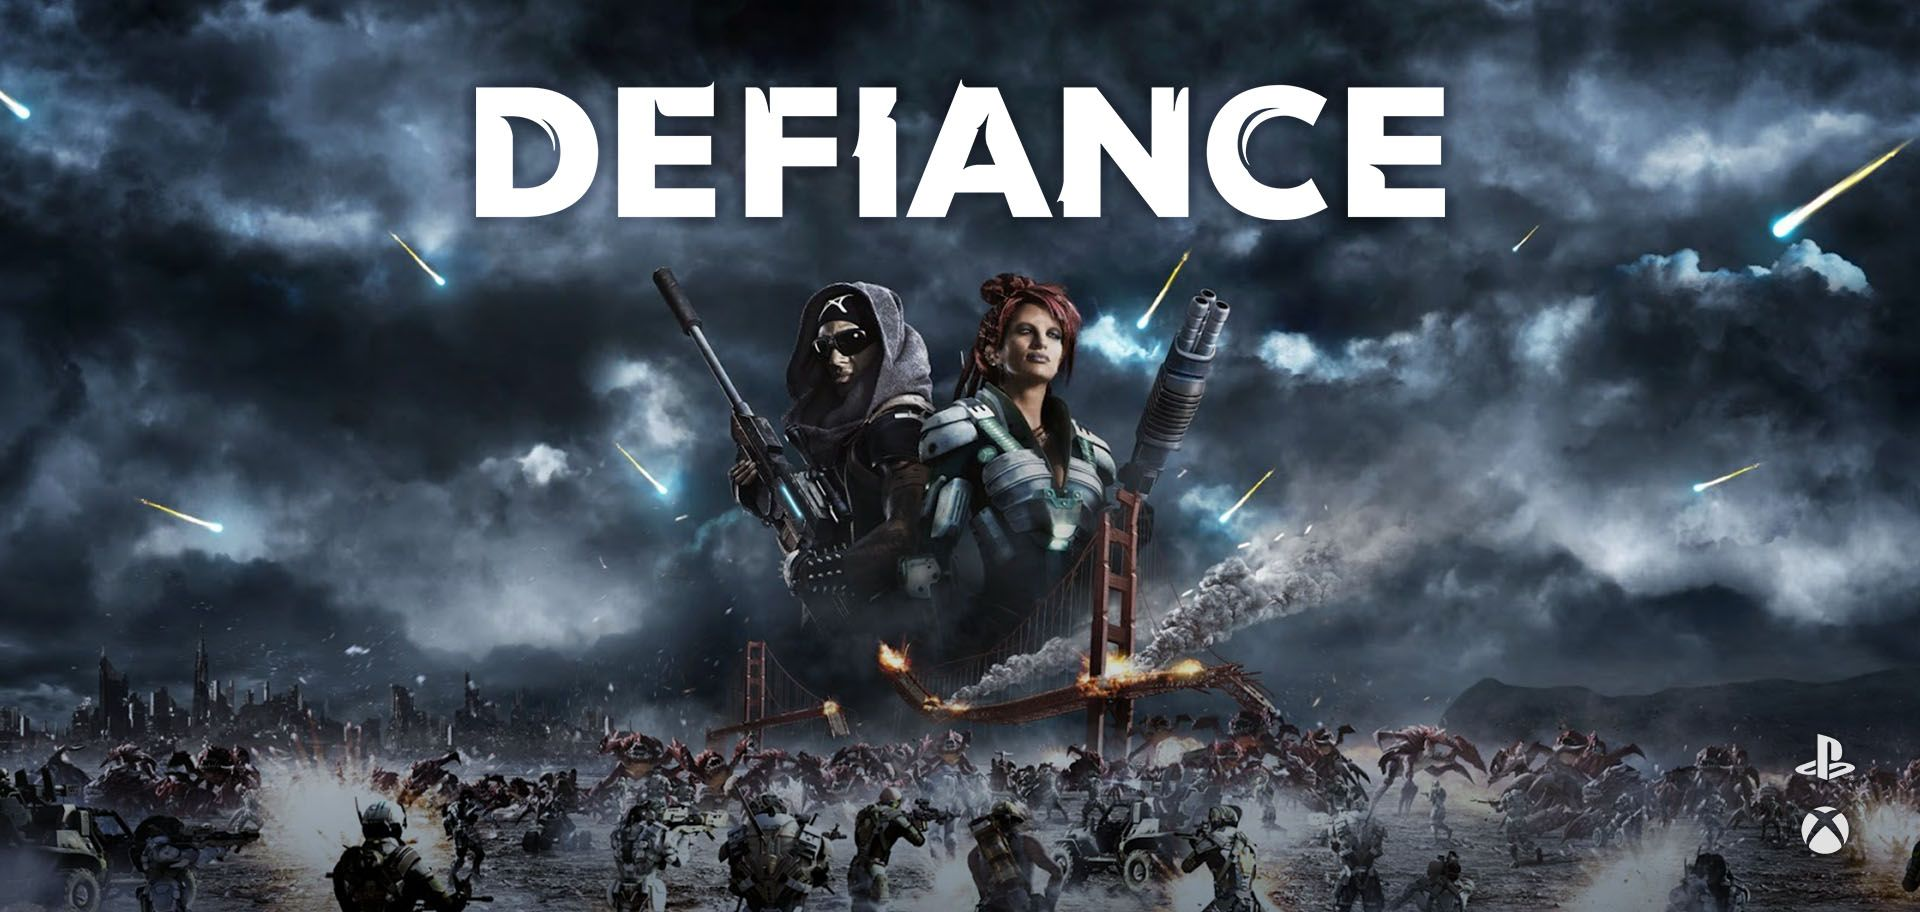 BSG1312_Defiance_PC-compressor